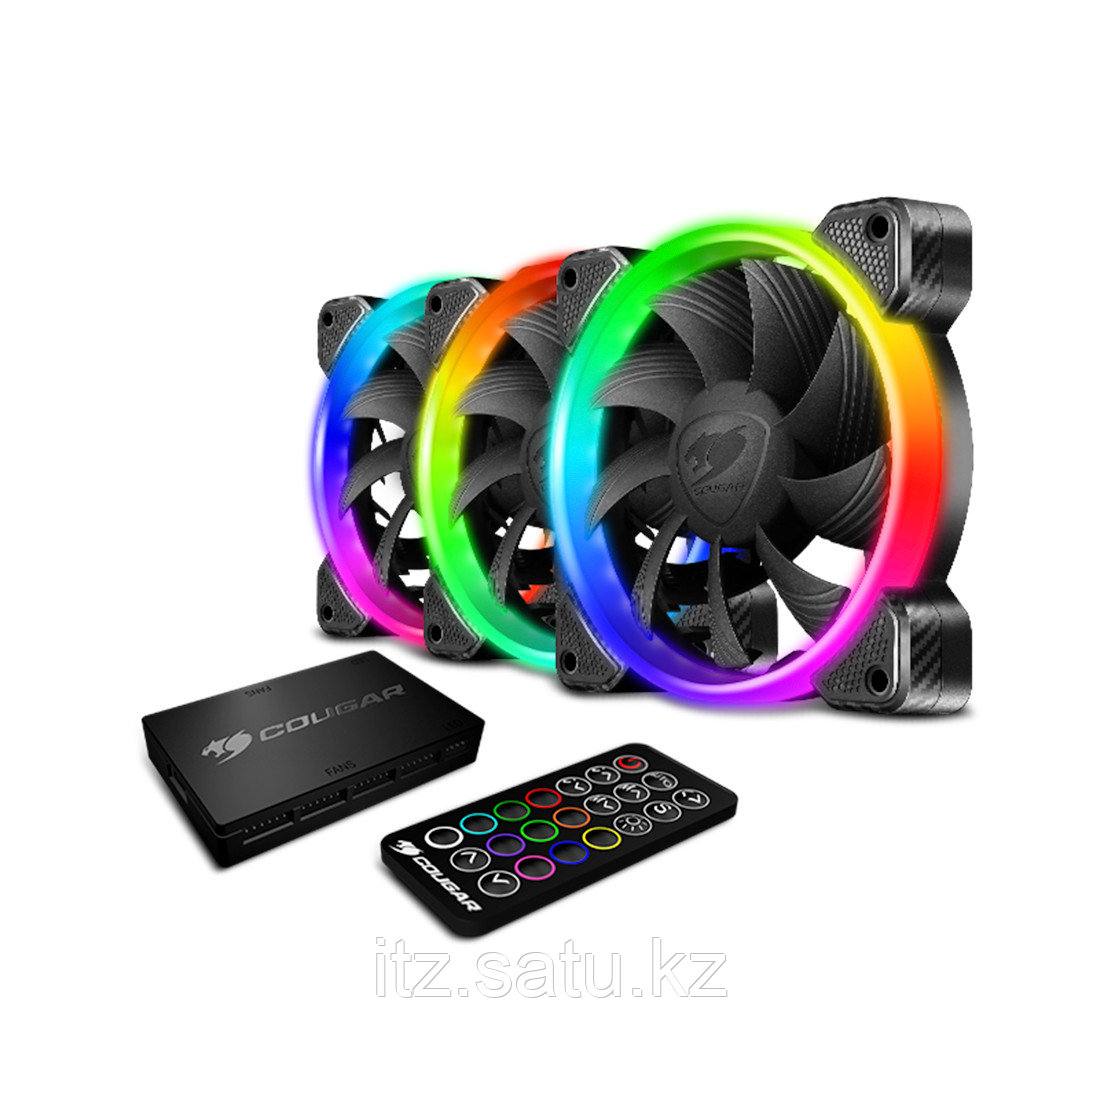 Комплект кулеров для компьютерного корпуса Cougar VORTEX HPB RGB COOLING KIT - 3 в1